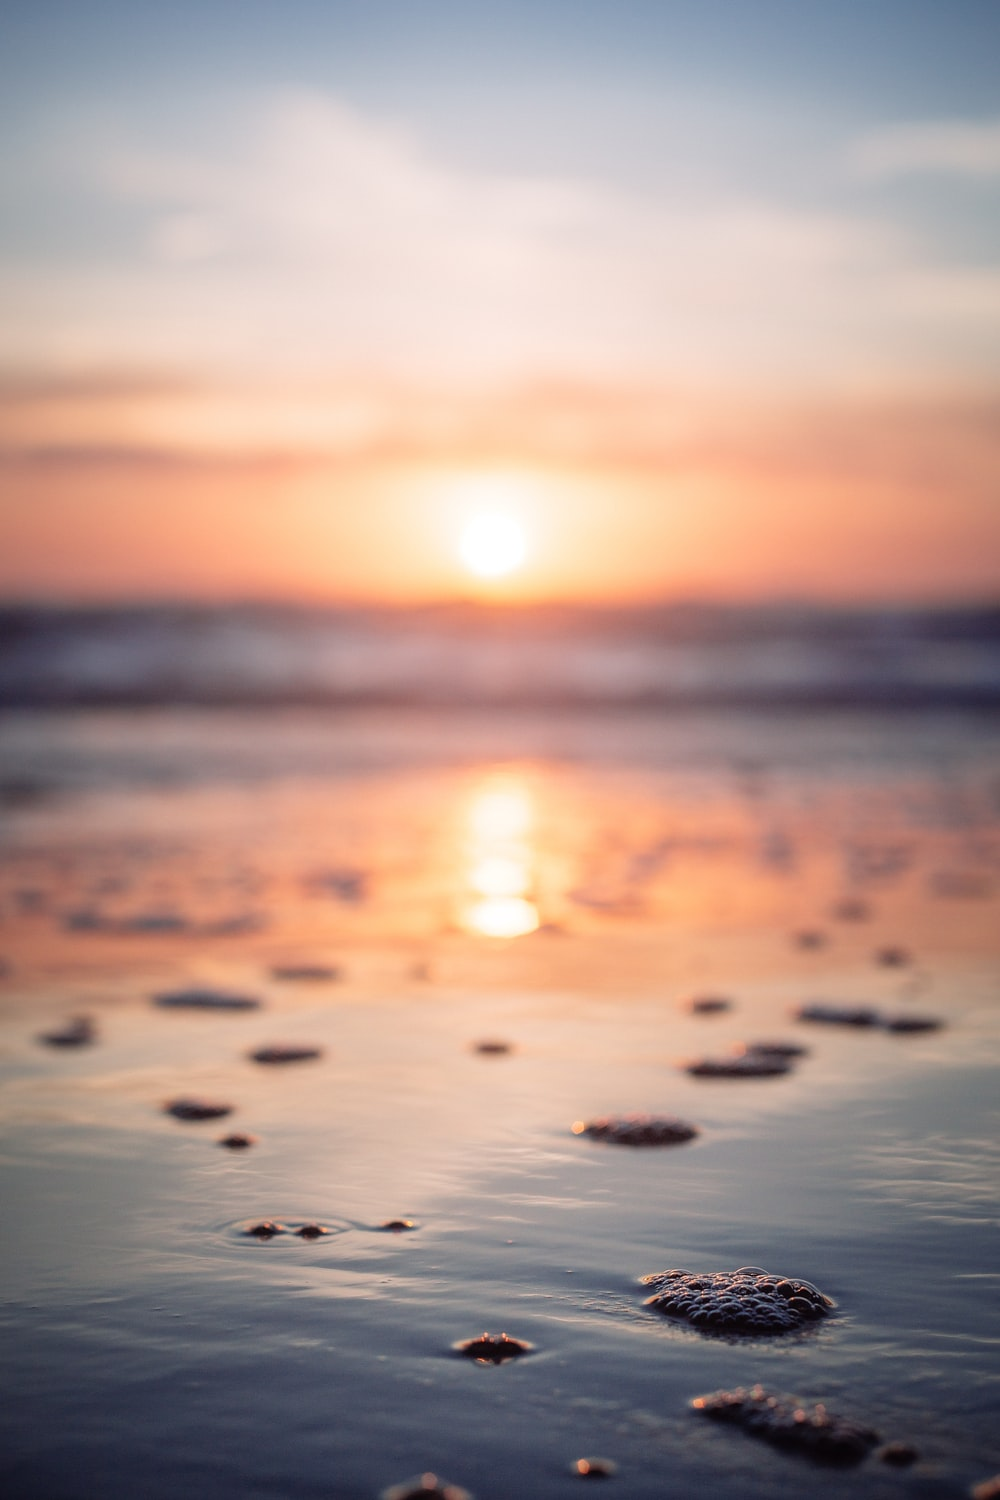 reflection of sunset on beachshore